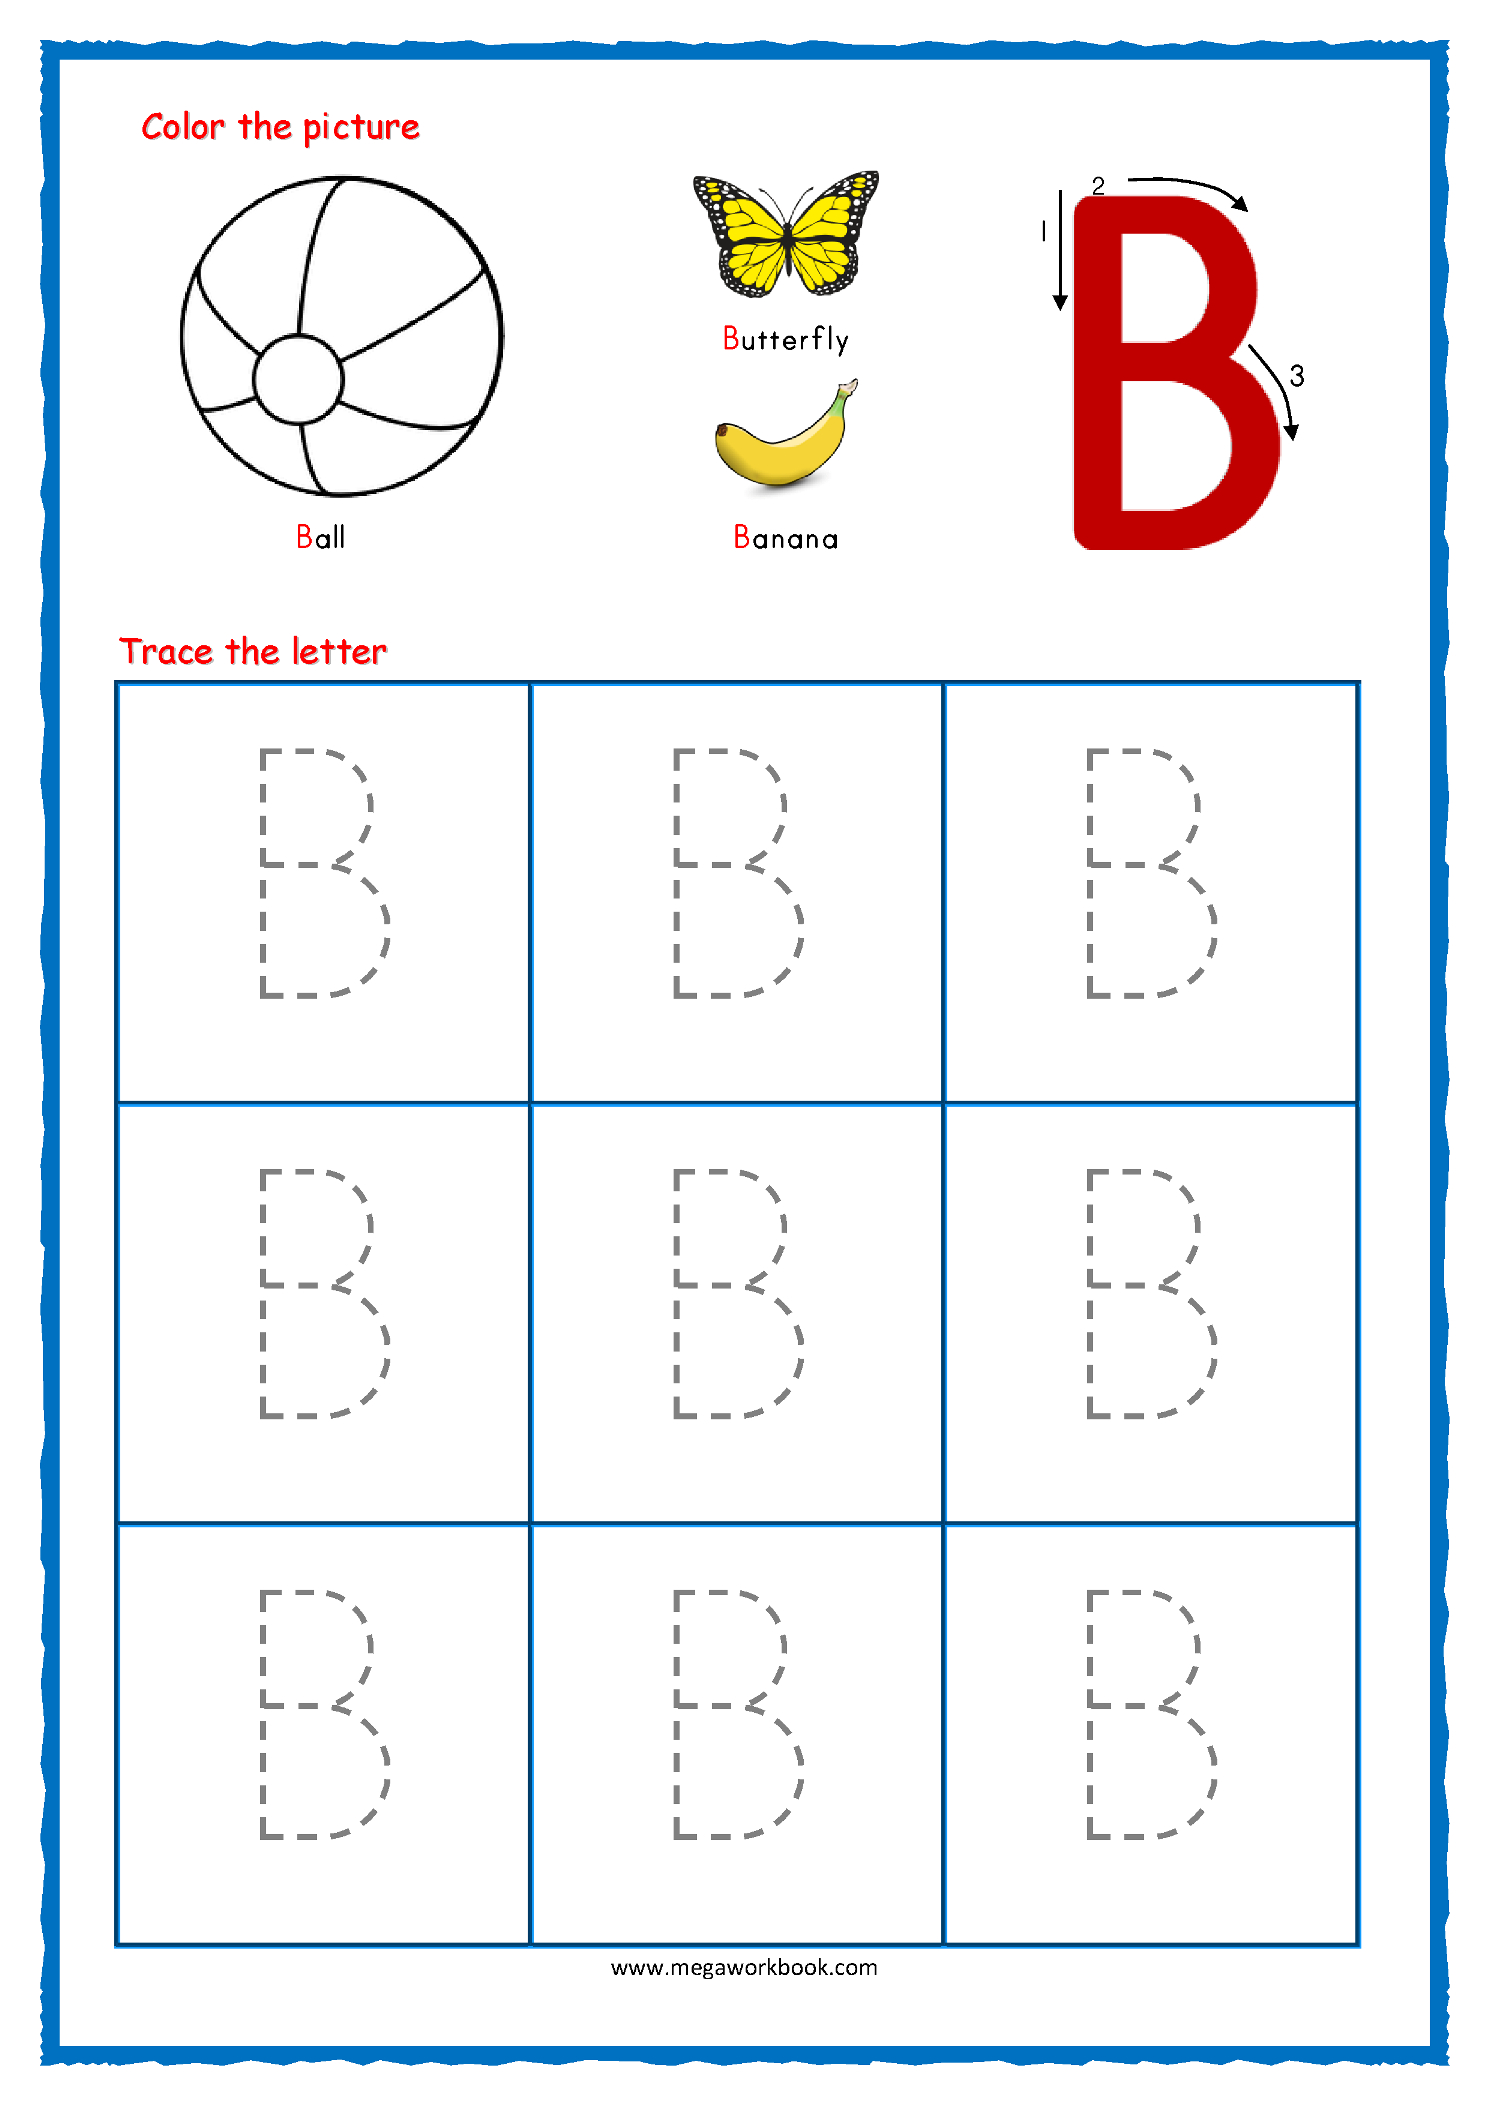 Tracing Letters - Alphabet Tracing - Capital Letters with Letter Tracing I